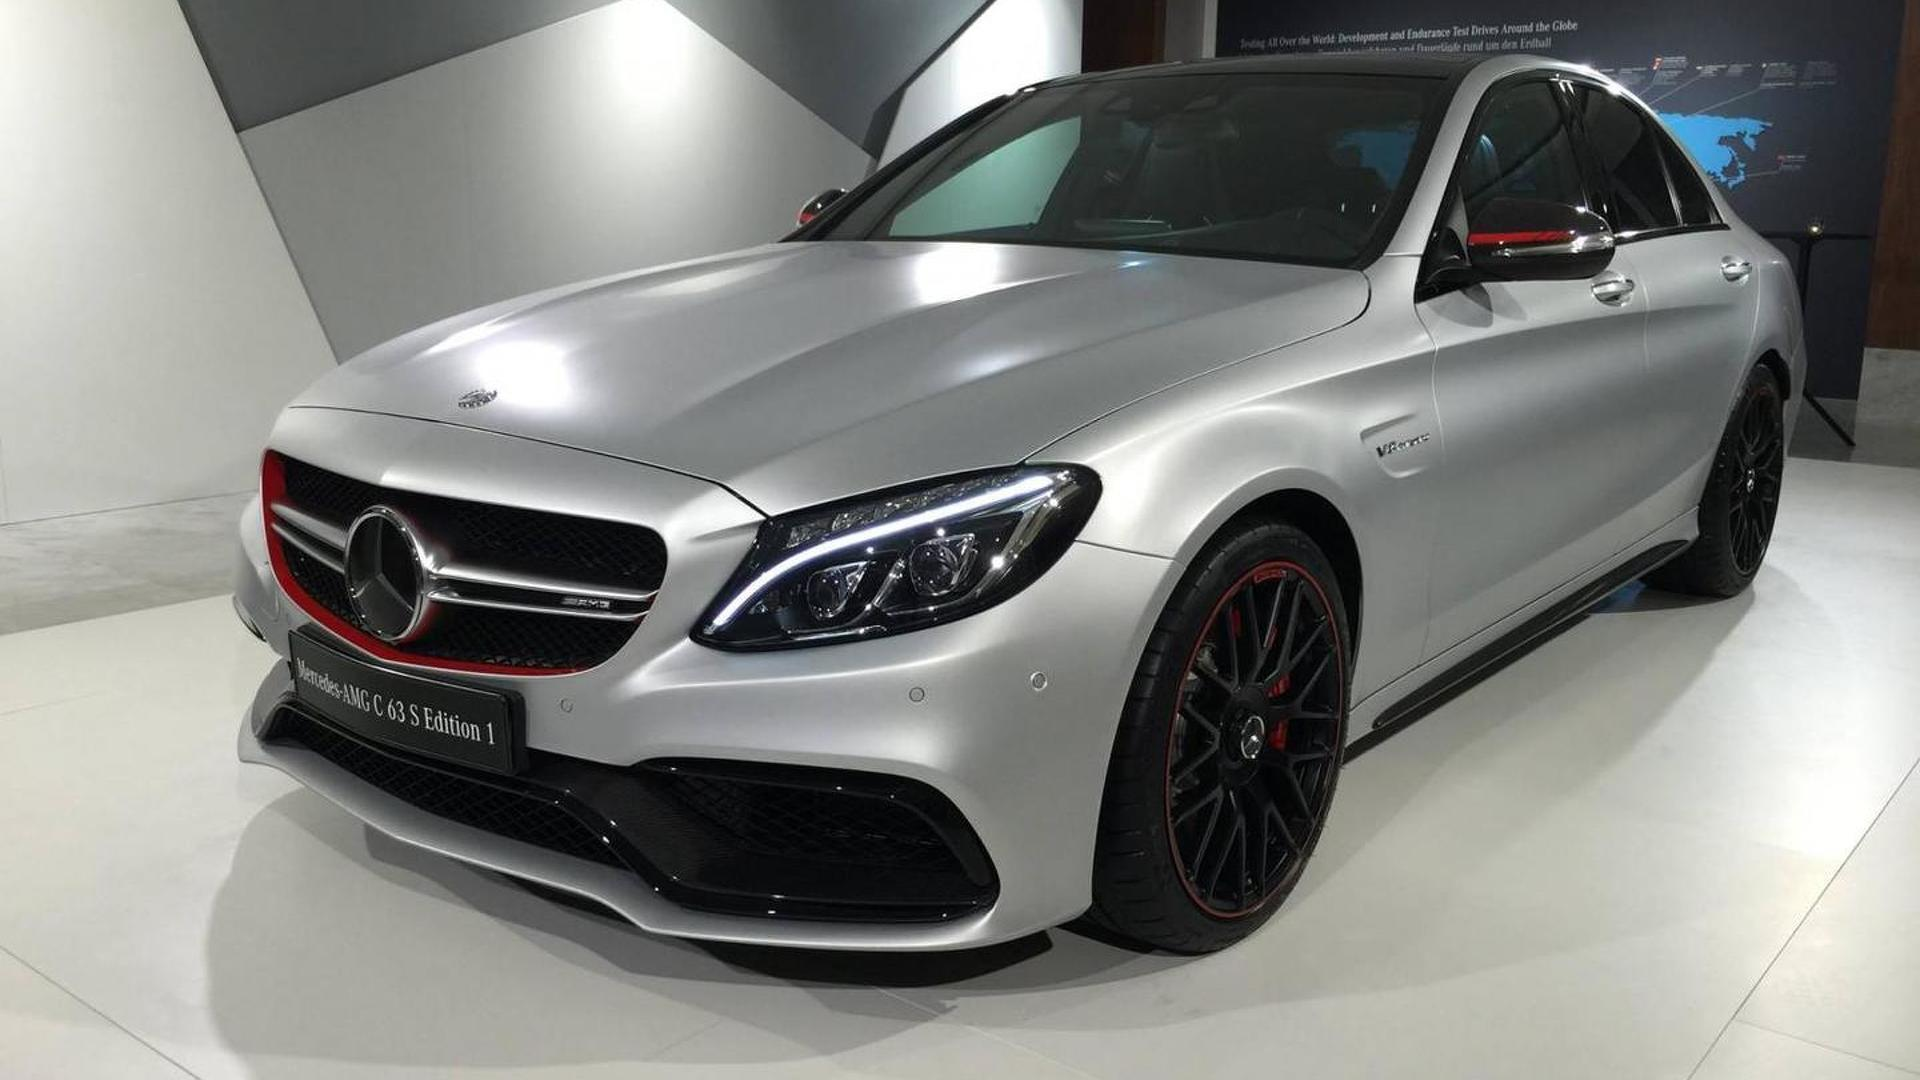 Mercedes amg c63 s edition 1 photographed up close and for Mercedes benz c63 amg